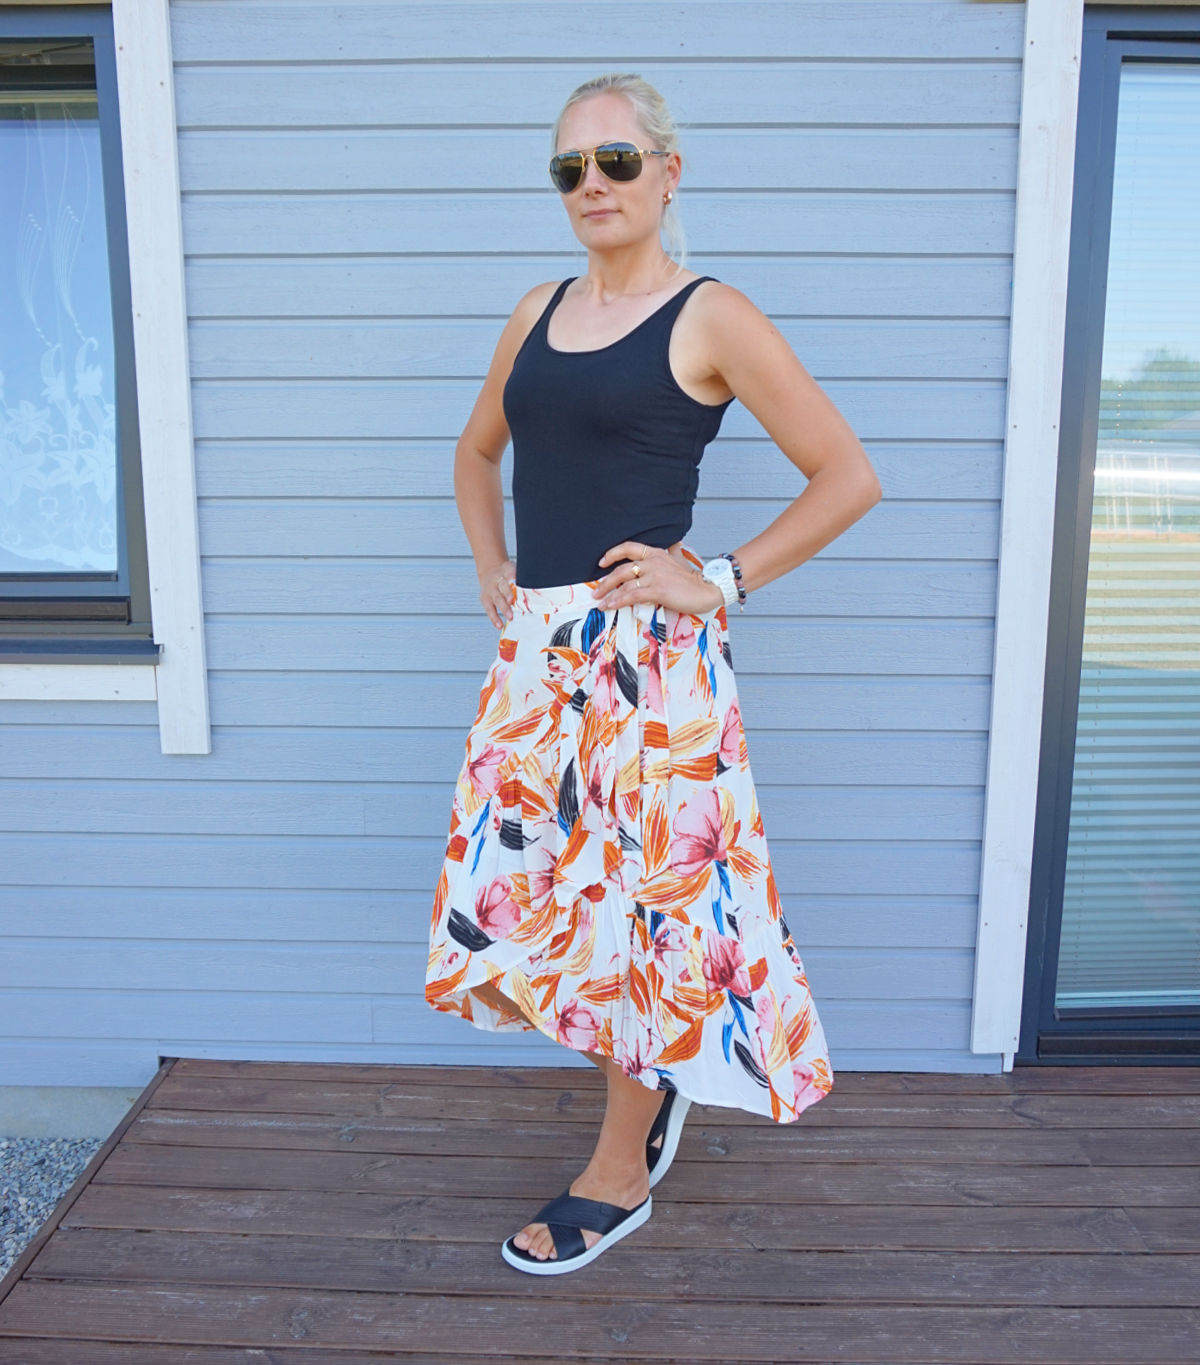 Floral wrap skirt outfit for summer